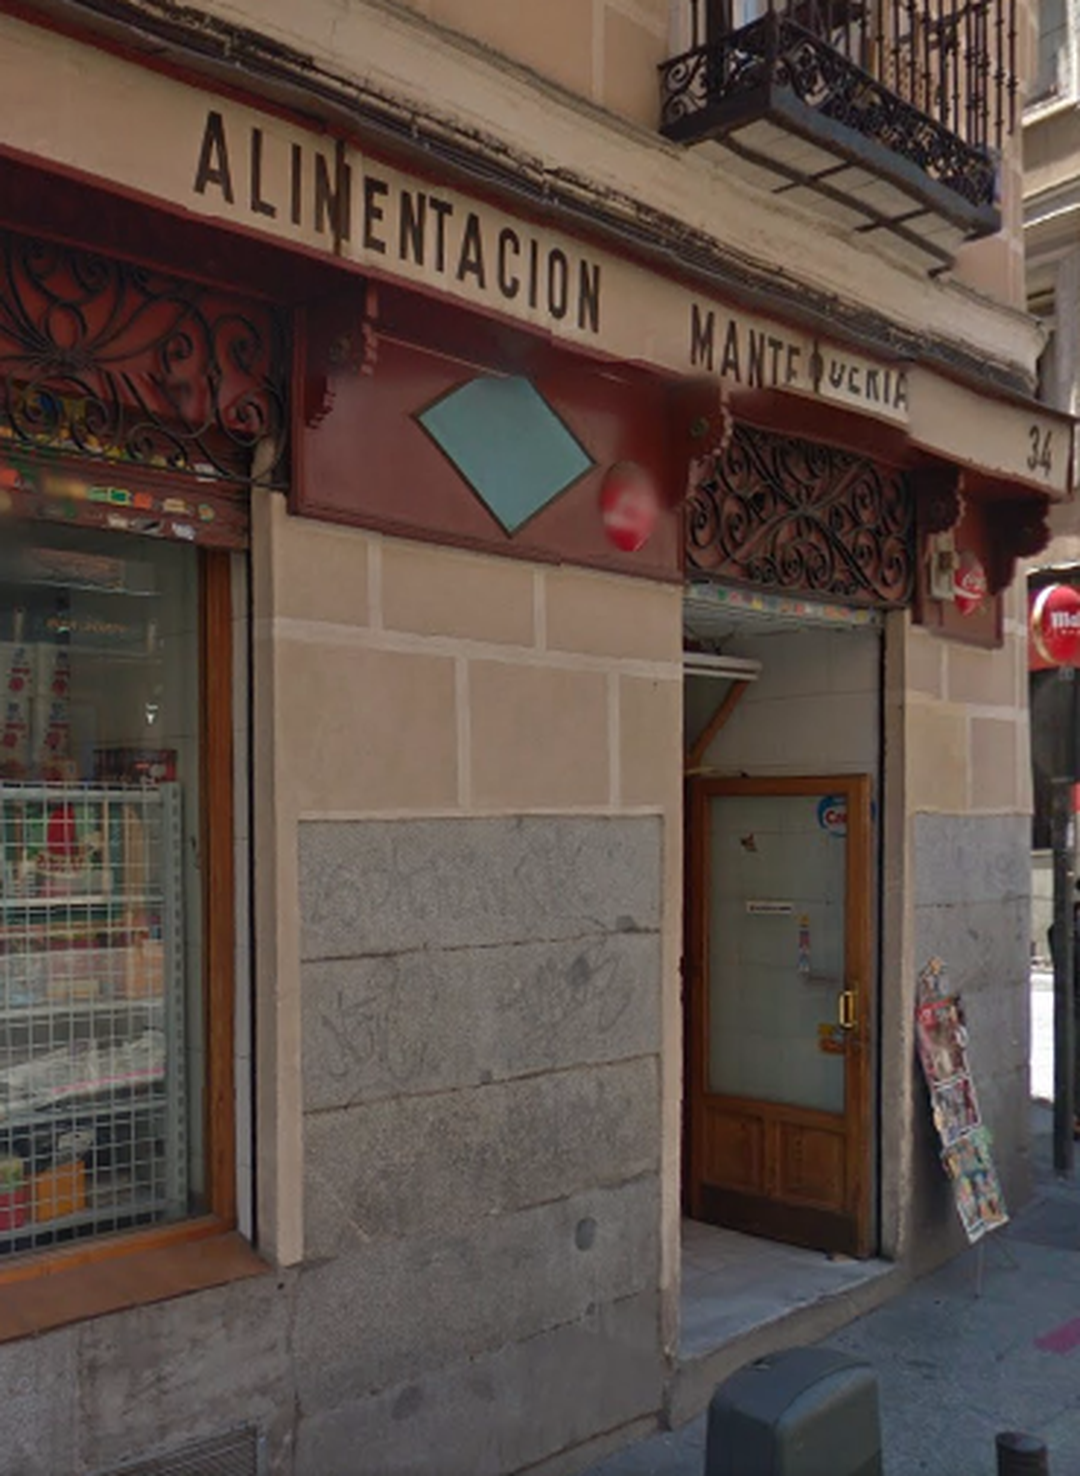 Photo of the February 5, 2016 6:57 PM, Alimentación Mantequeria, Calle Fúcar, 1, 28014 Madrid, Spain